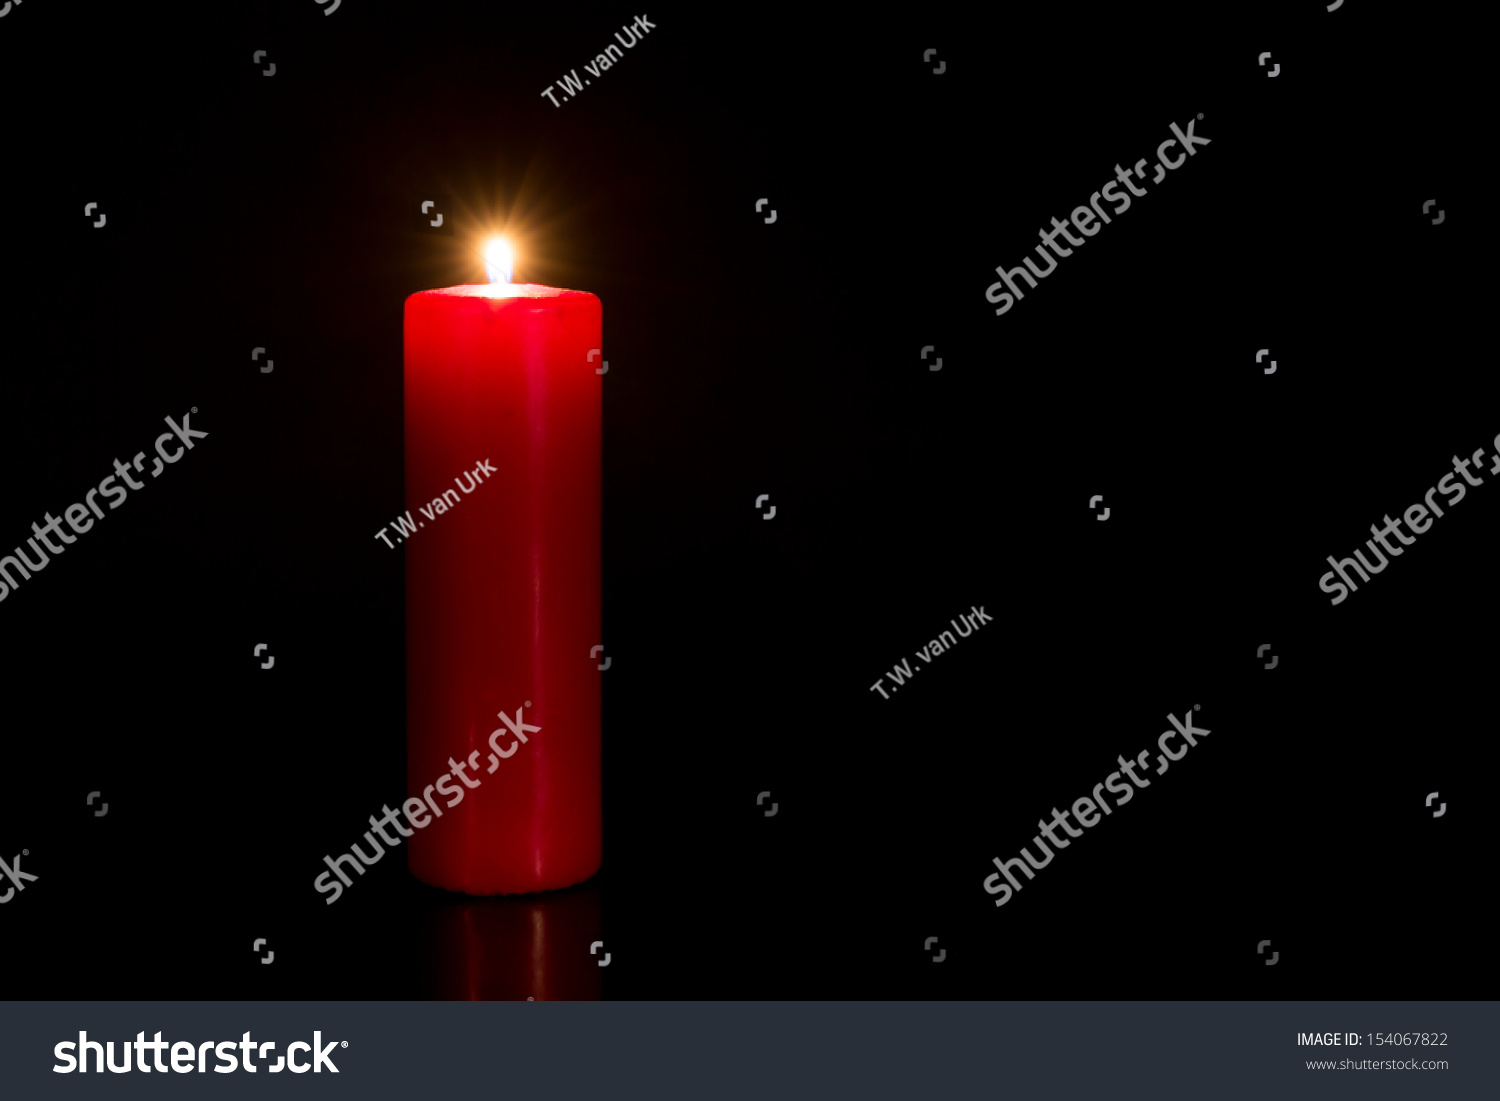 red candle black background - photo #29